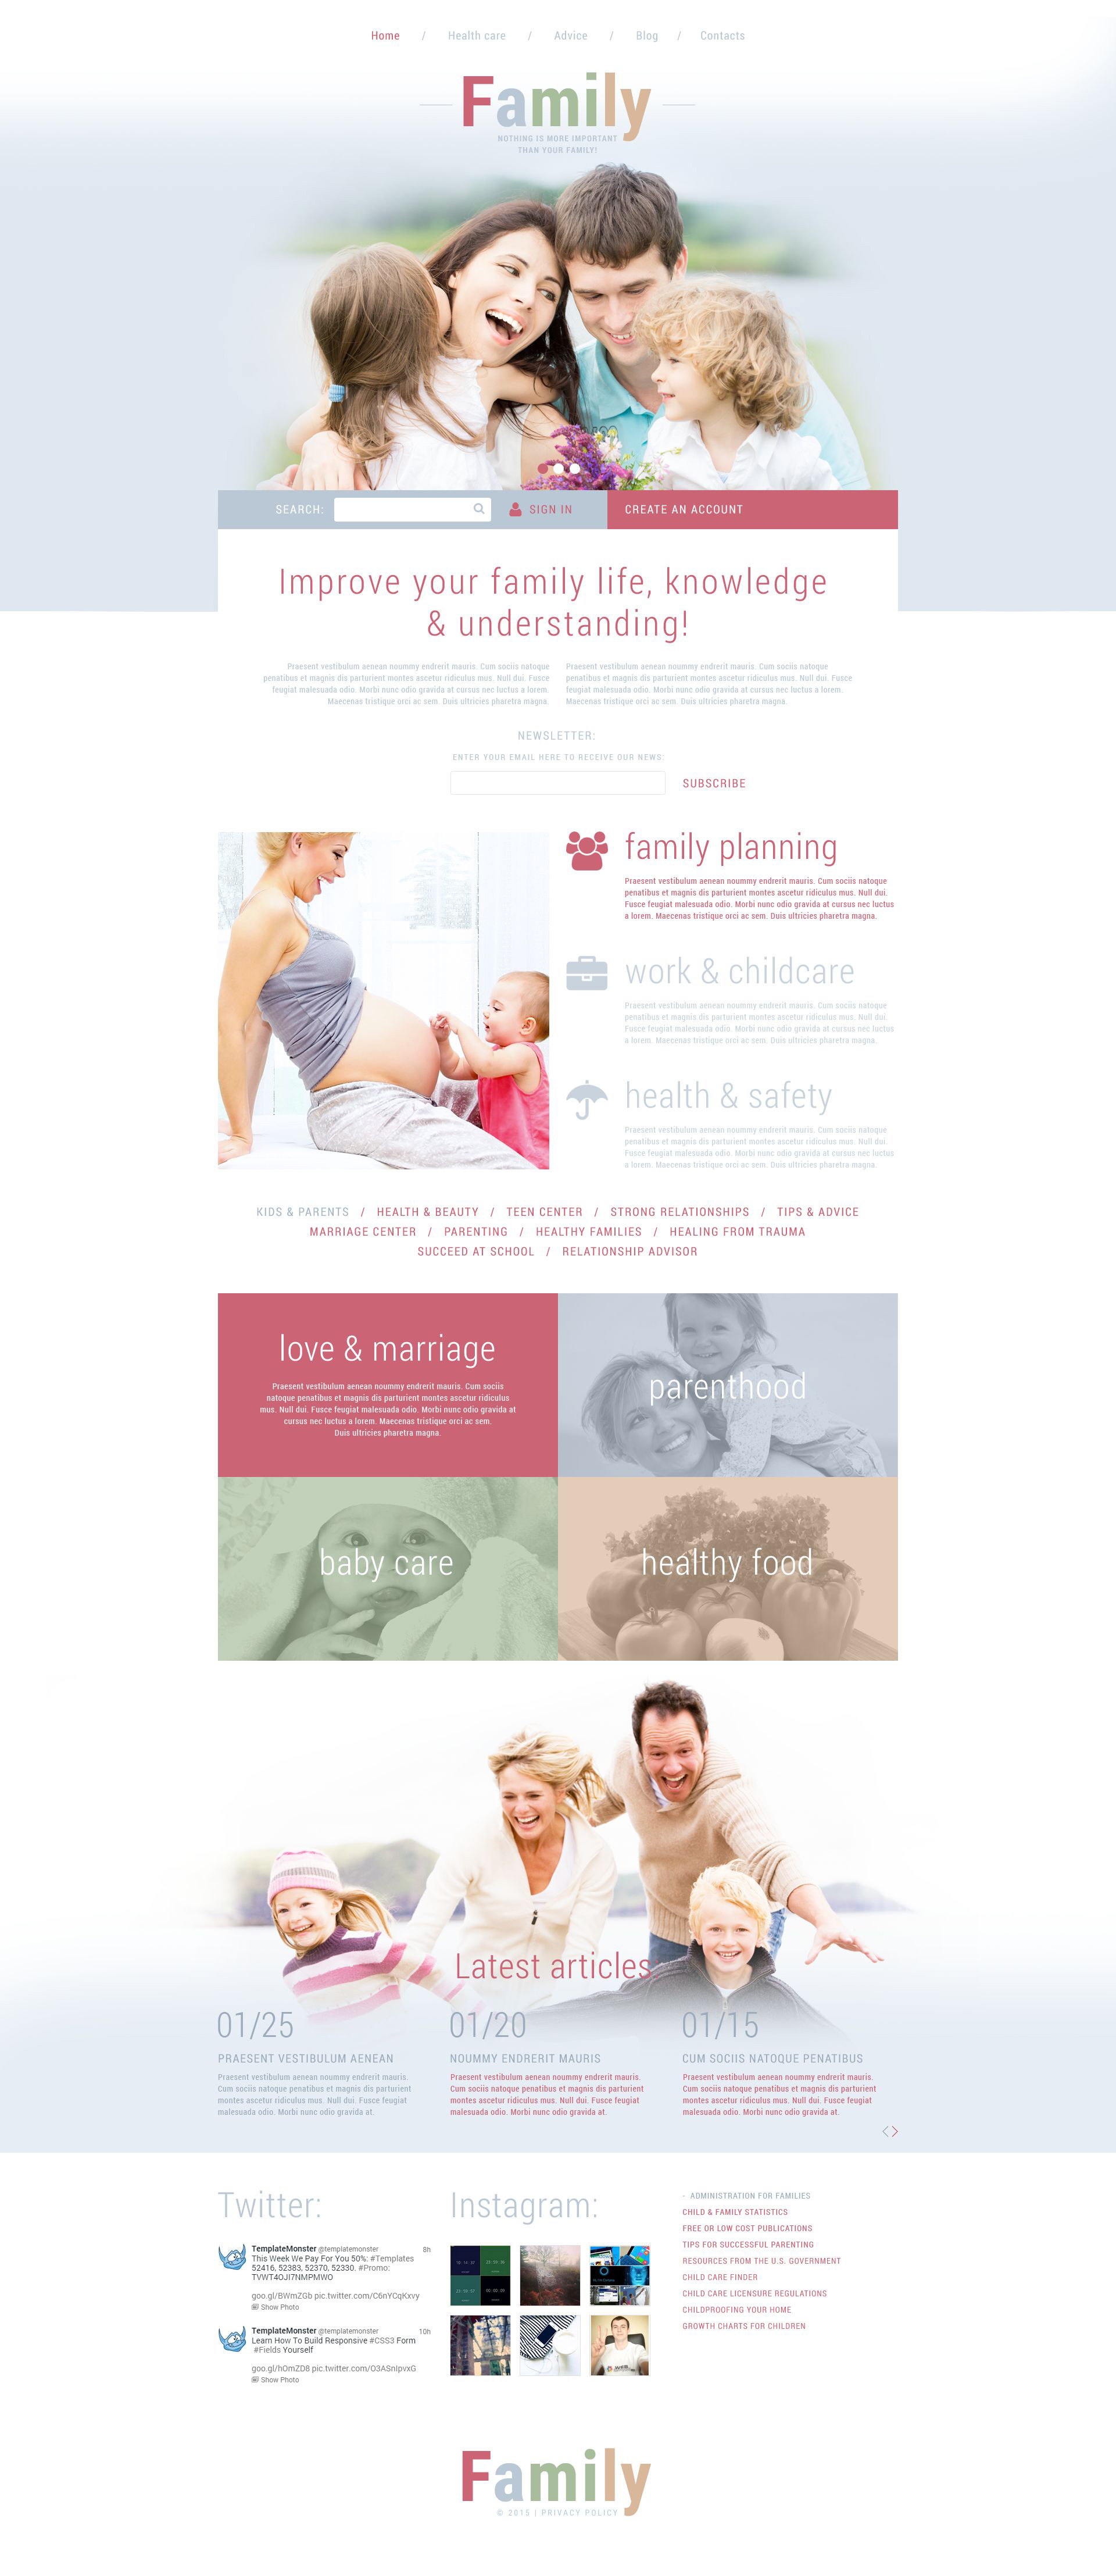 The Family Life Portal Joomla Design 53402, one of the best Joomla templates of its kind (family, most popular), also known as family life portal Joomla template, site Joomla template, harmony Joomla template, hearth Joomla template, home Joomla template, children Joomla template, baby Joomla template, child Joomla template, mother Joomla template, father Joomla template, grandparents Joomla template, relatives Joomla template, relationship Joomla template, close care Joomla template, happiness Joomla template, education Joomla template, youth Joomla template, health Joomla template, kids Joomla template, fun Joomla template, advices Joomla template, events Joomla template, entertainment Joomla template, information Joomla template, support Joomla template, directory Joomla template, psychology Joomla template, services Joomla template, culture Joomla template, tips and related with family life portal, site, harmony, hearth, home, children, baby, child, mother, father, grandparents, relatives, relationship, close care, happiness, education, youth, health, kids, fun, advices, events, entertainment, information, support, directory, psychology, services, culture, tips, etc.